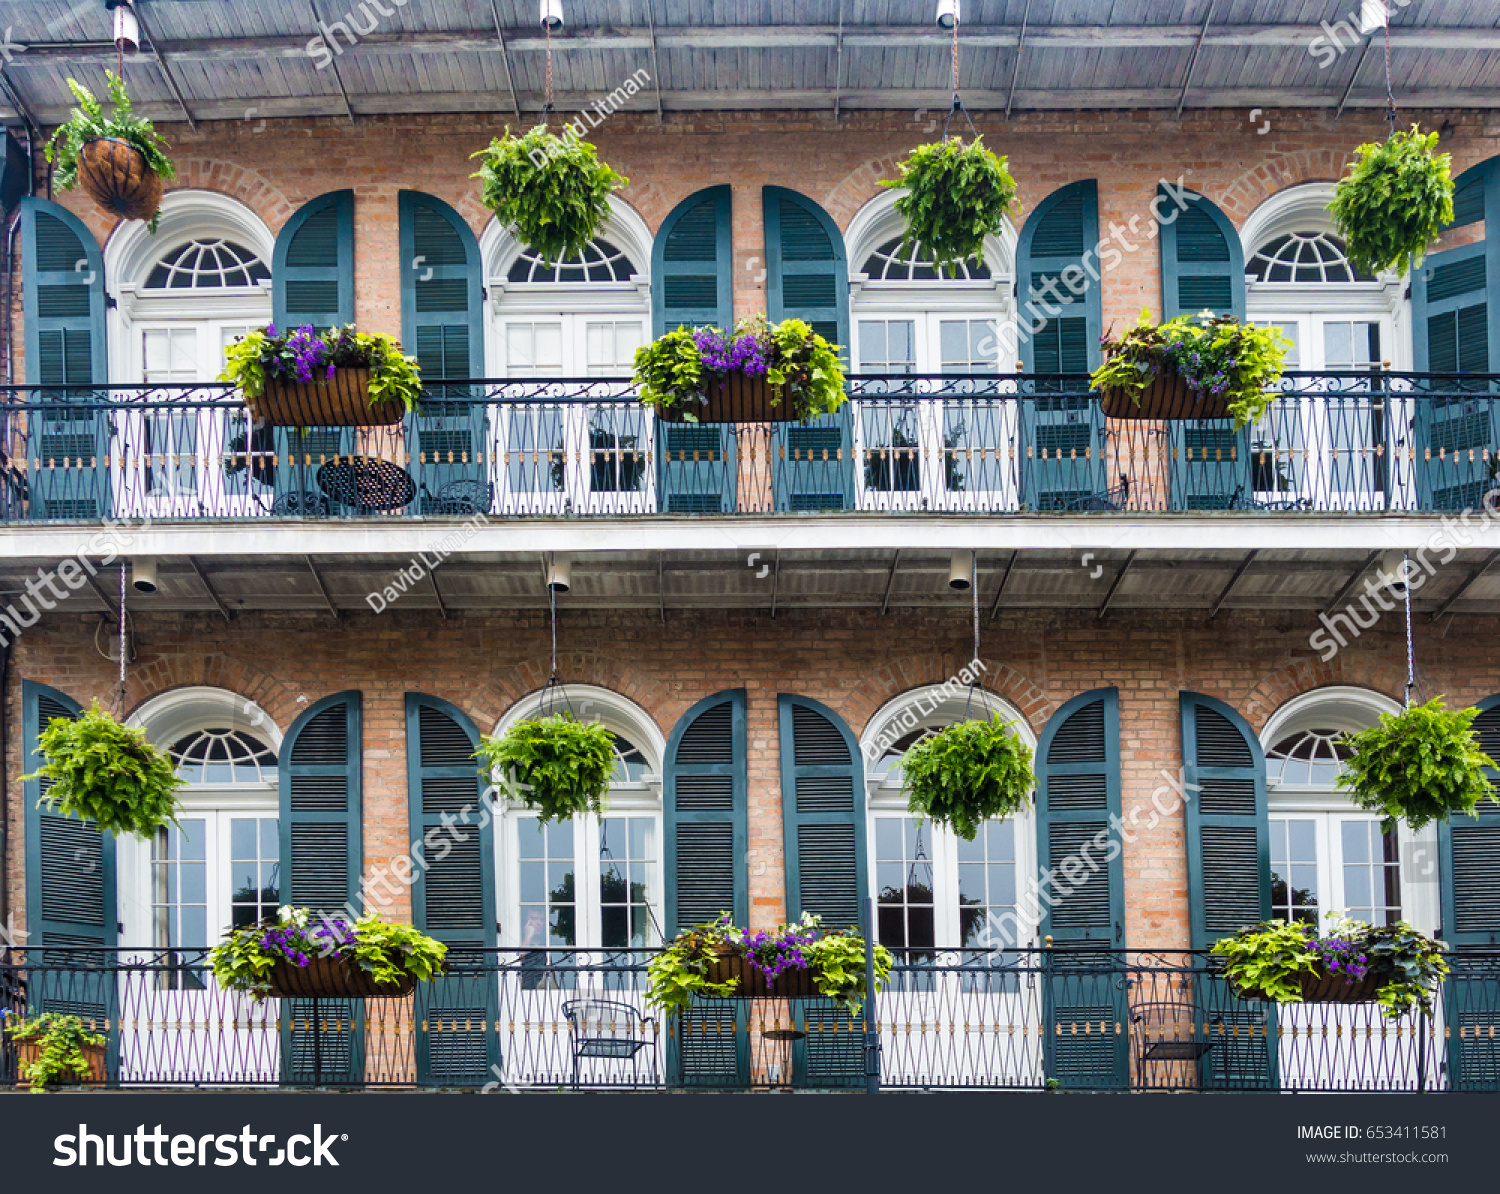 A colorful balcony in the French Quarter of New Orleans, Louisiana